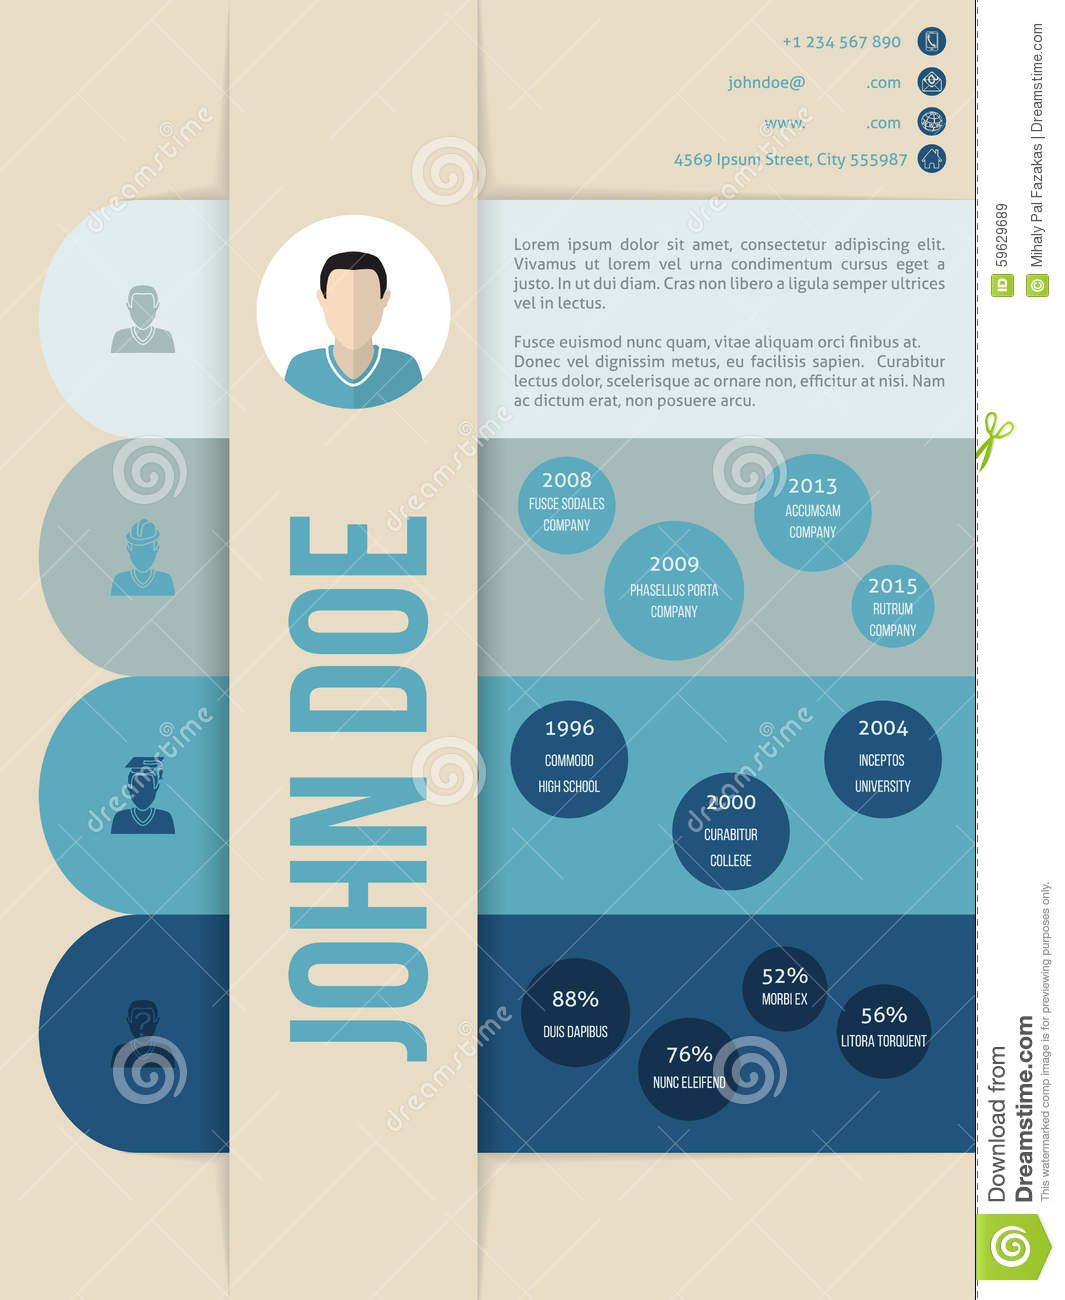 modern cv curriculum vitae resume template in blue shades stock vector